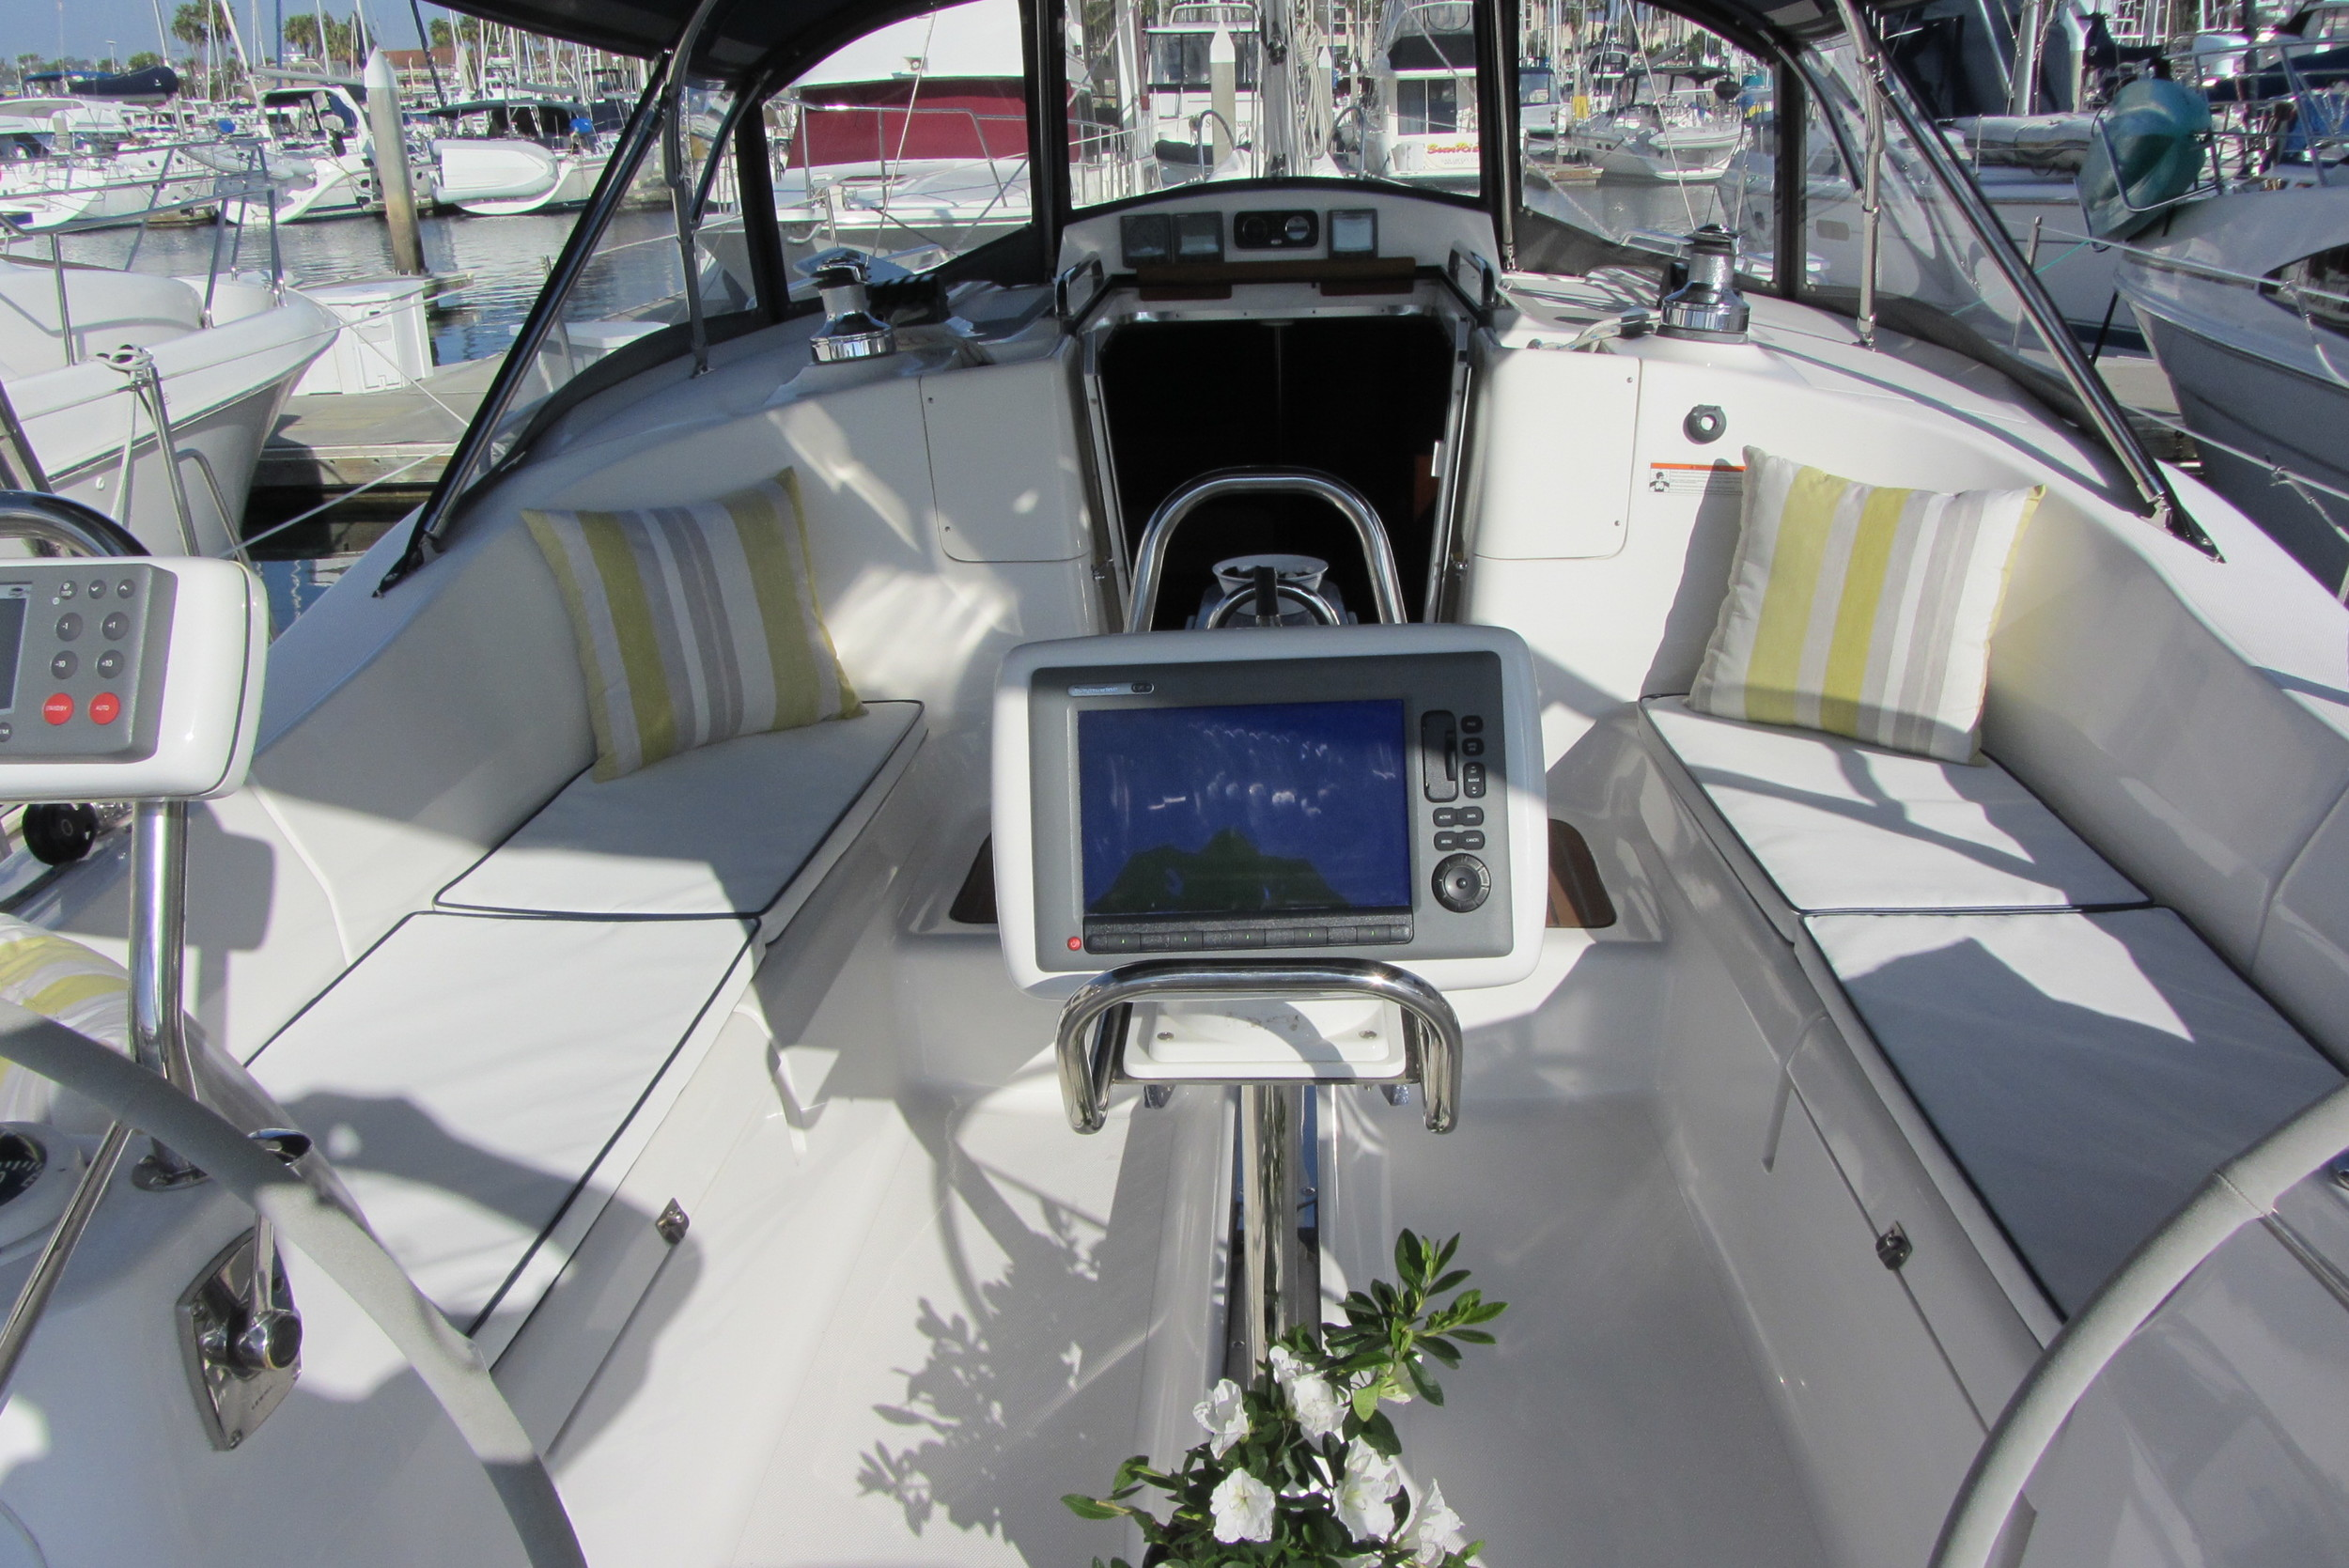 Comfortable Sailing in San Diego